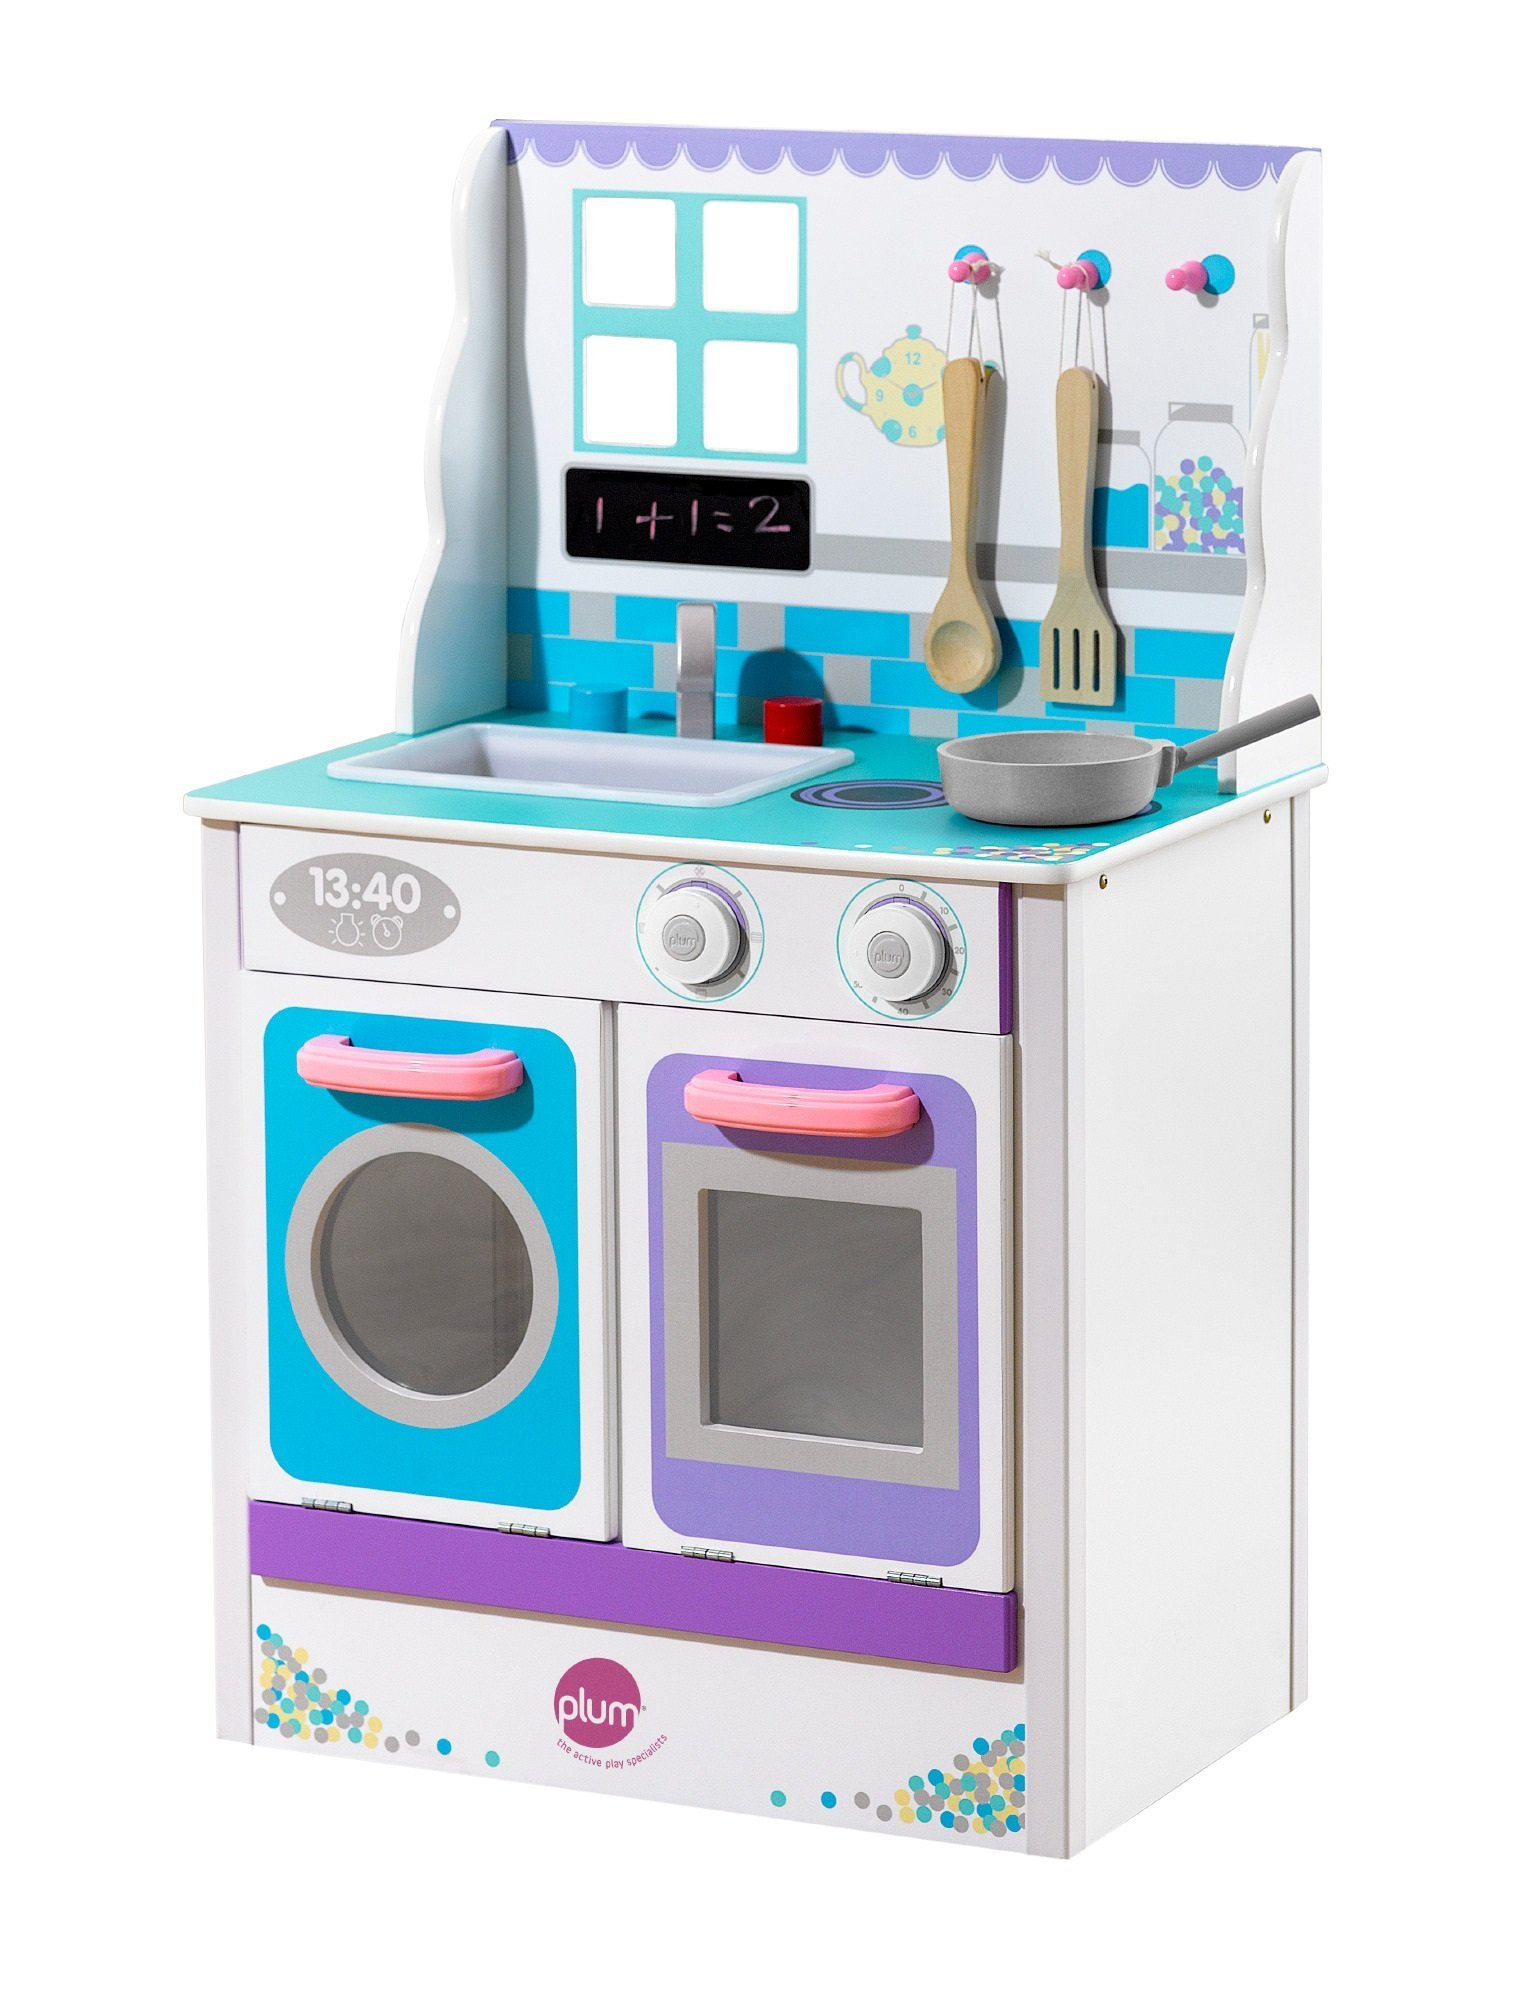 Plum® Chive CookaLot Kitchen Wooden play kitchen, Play